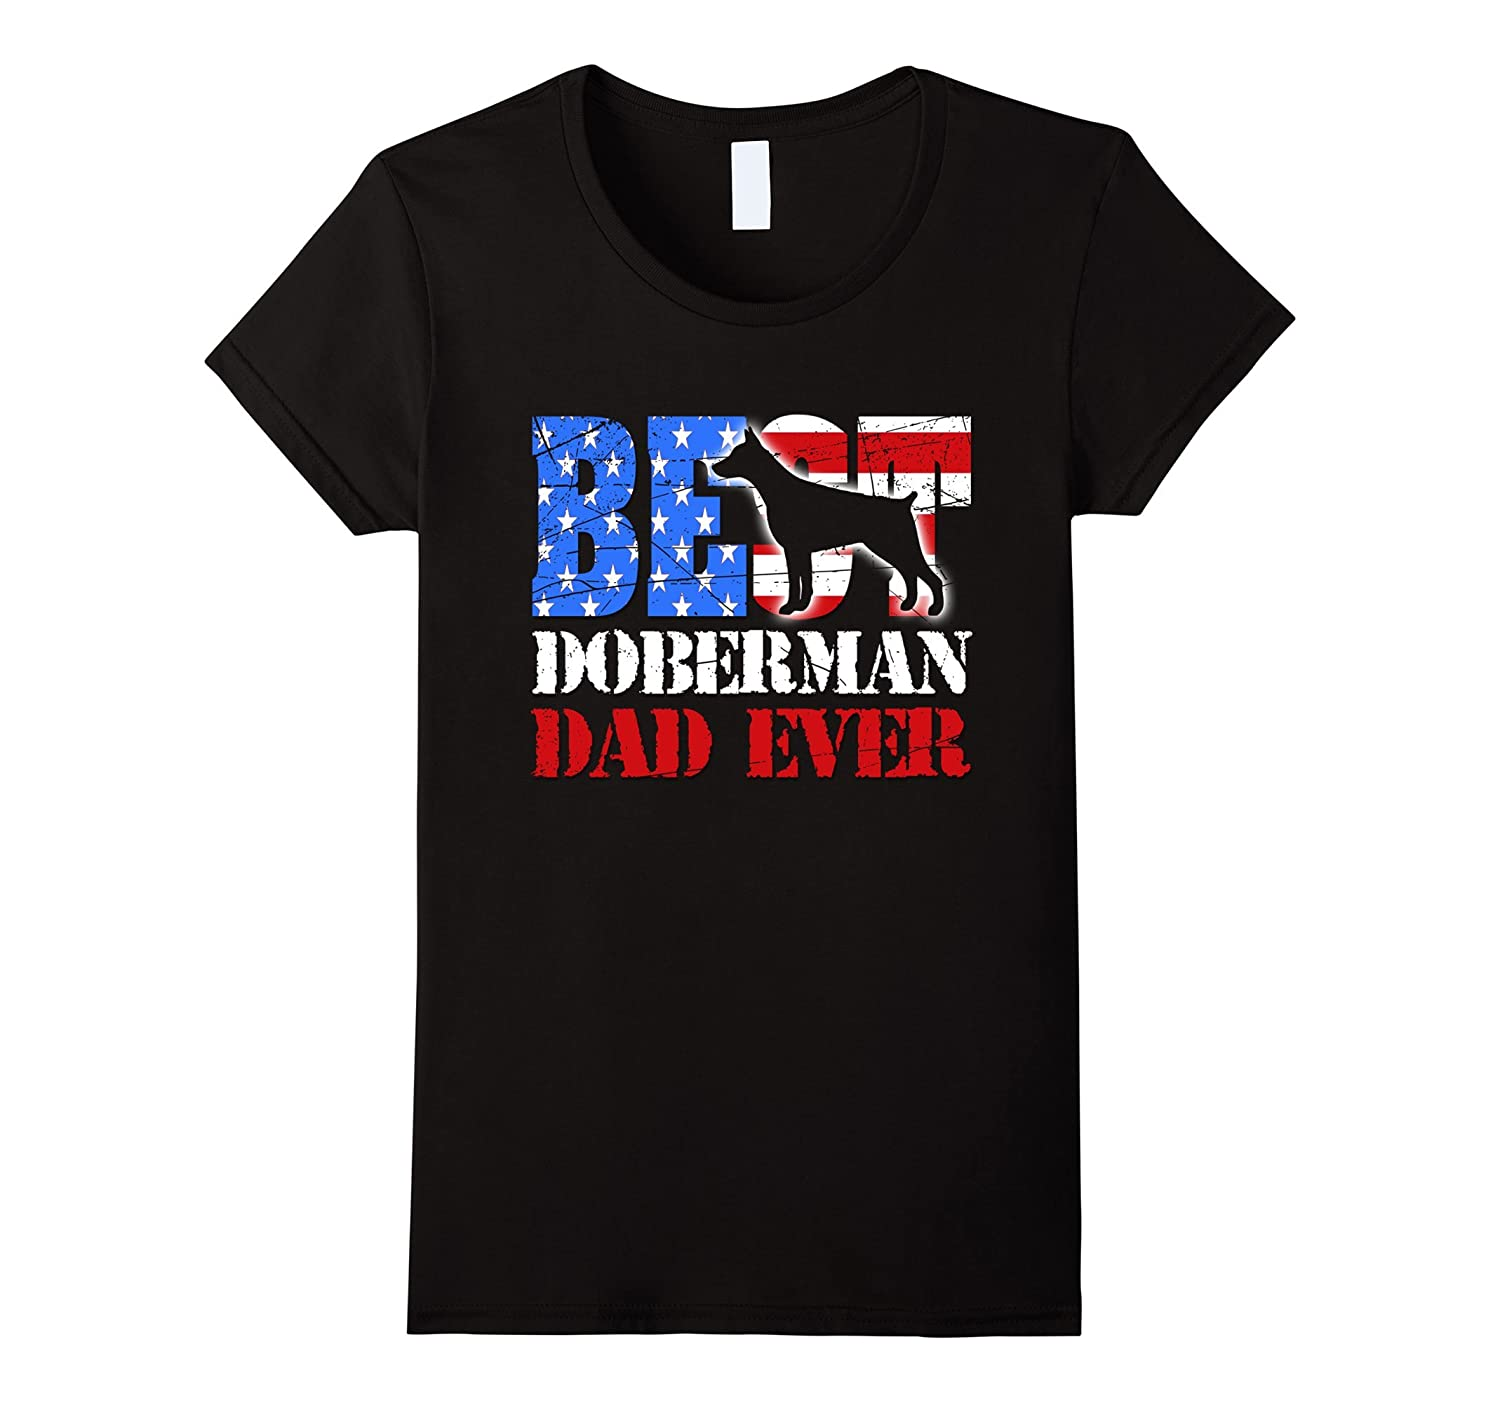 Best Doberman Dad Ever shirt